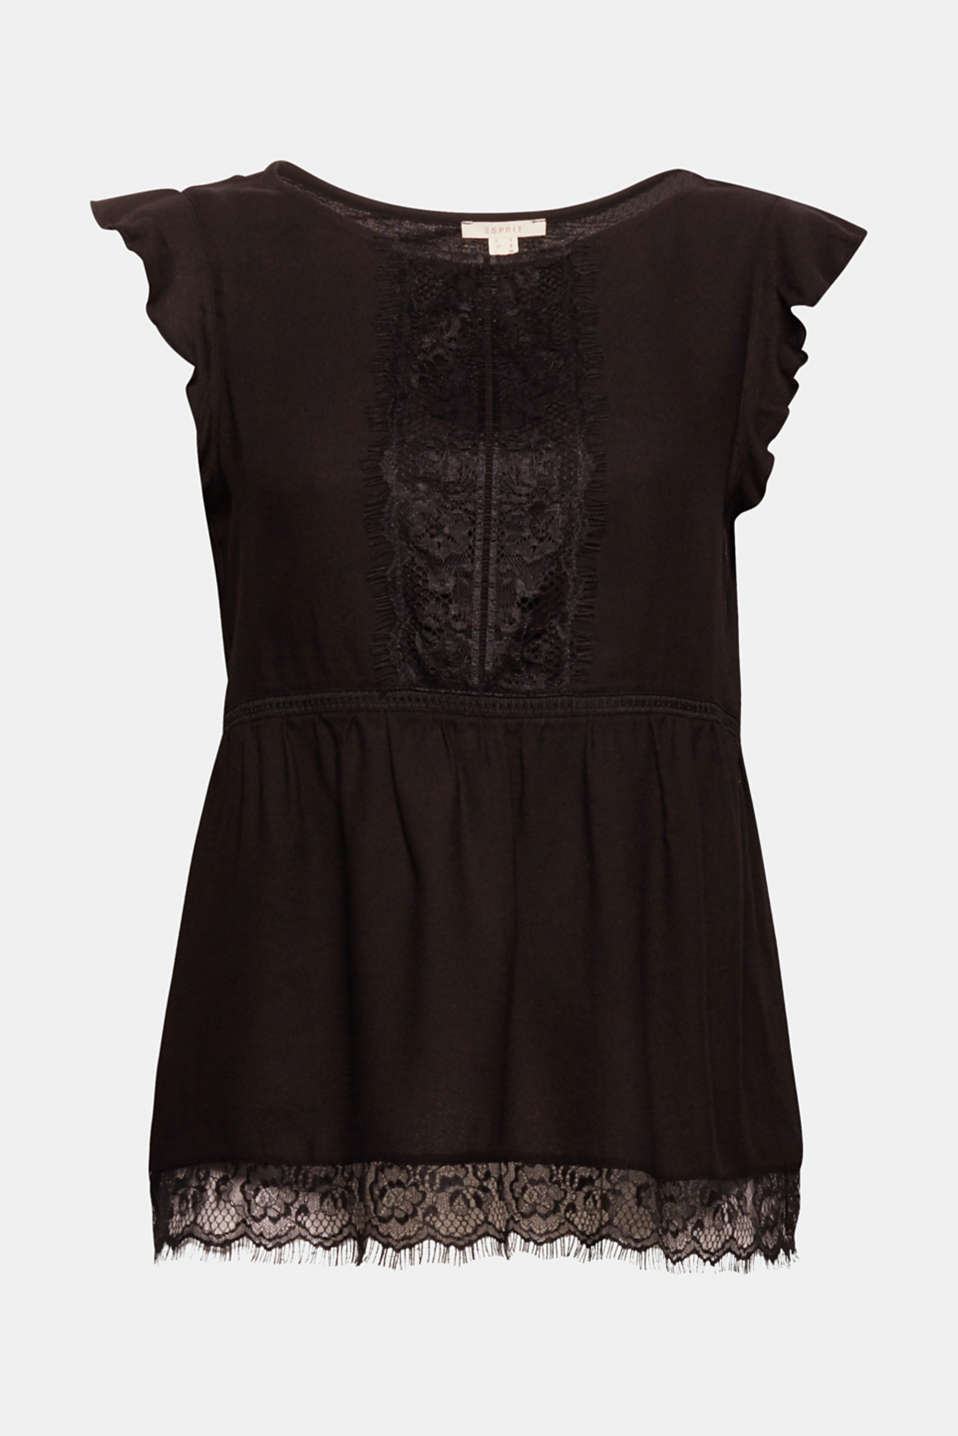 For pretty, fashionable look: Blouse top in a lightweight mix of materials with frills on the sleeves and an elegant lace trim!